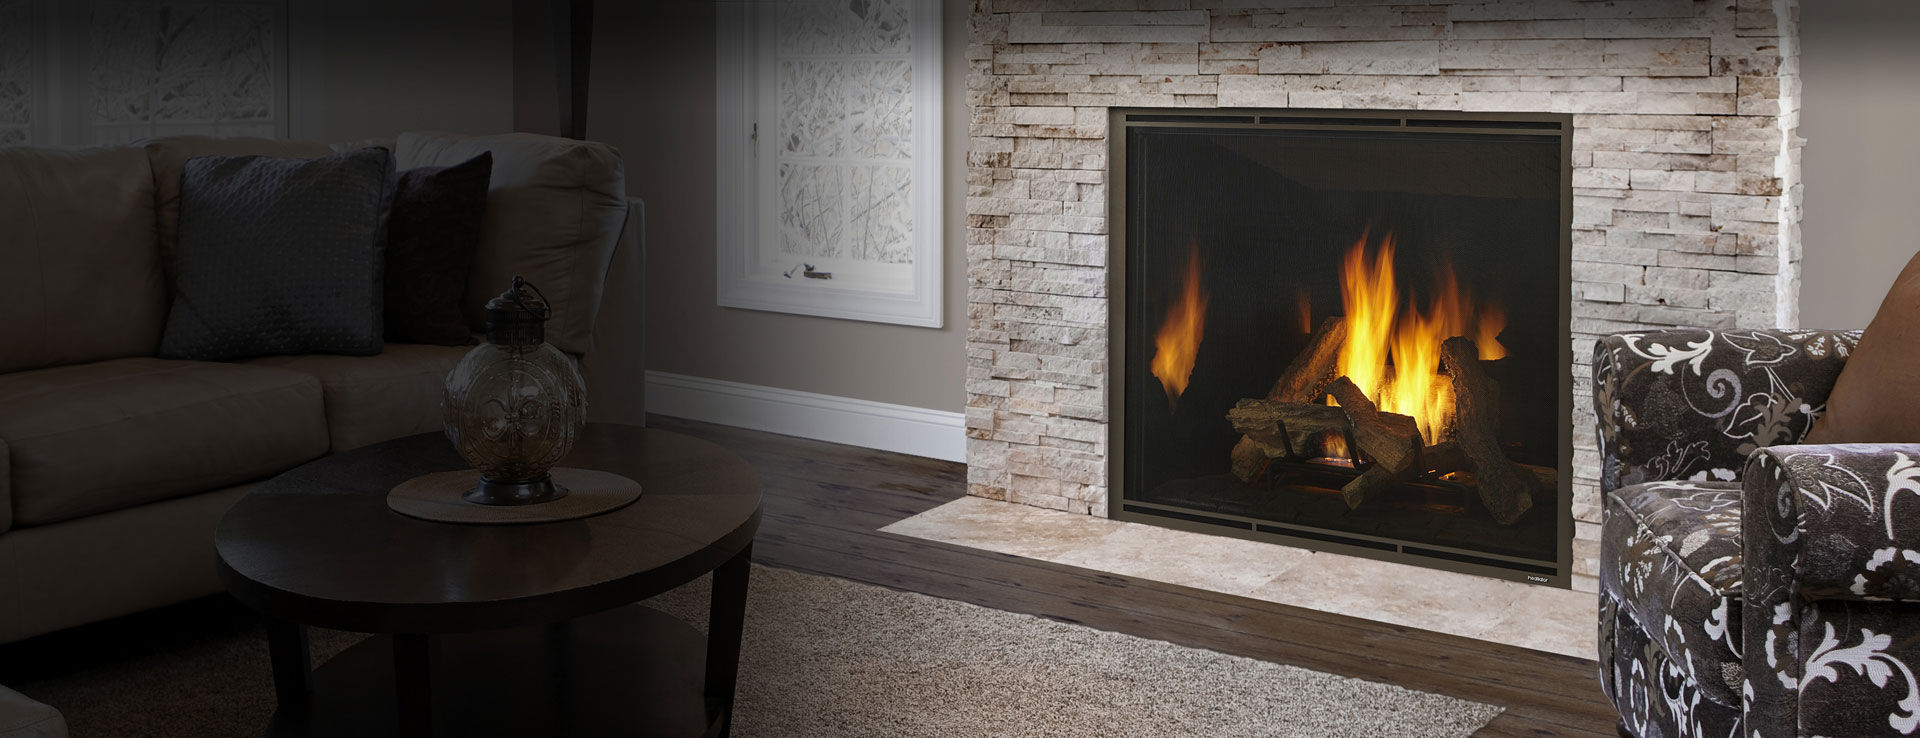 Novus Fireplace Gas Fireplace Traditional Closed Hearth Built In Heirloom